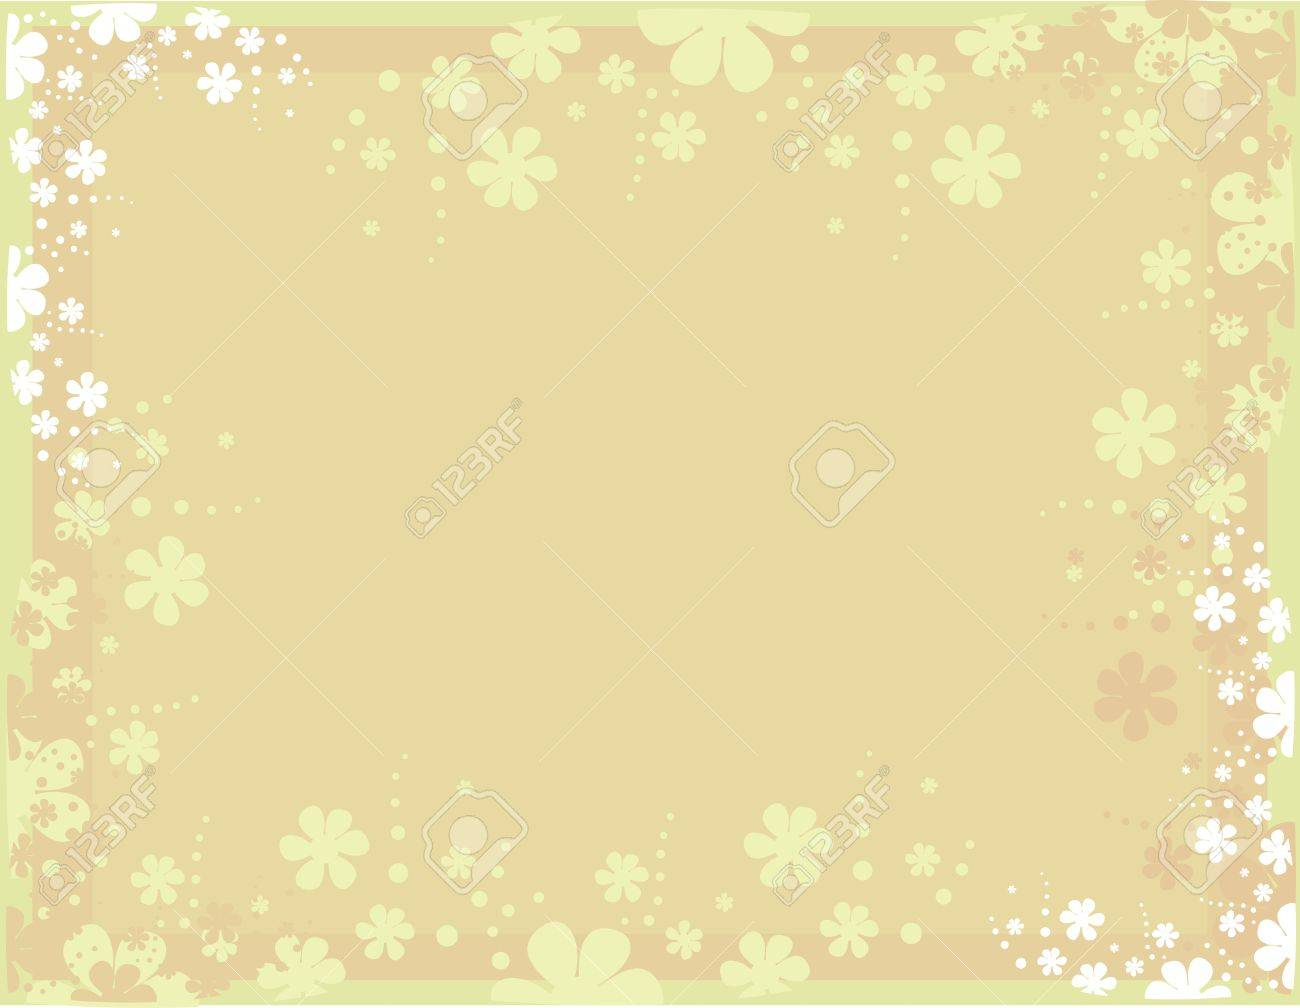 Tan background with scattered white and pink flowers Stock Vector - 7315136